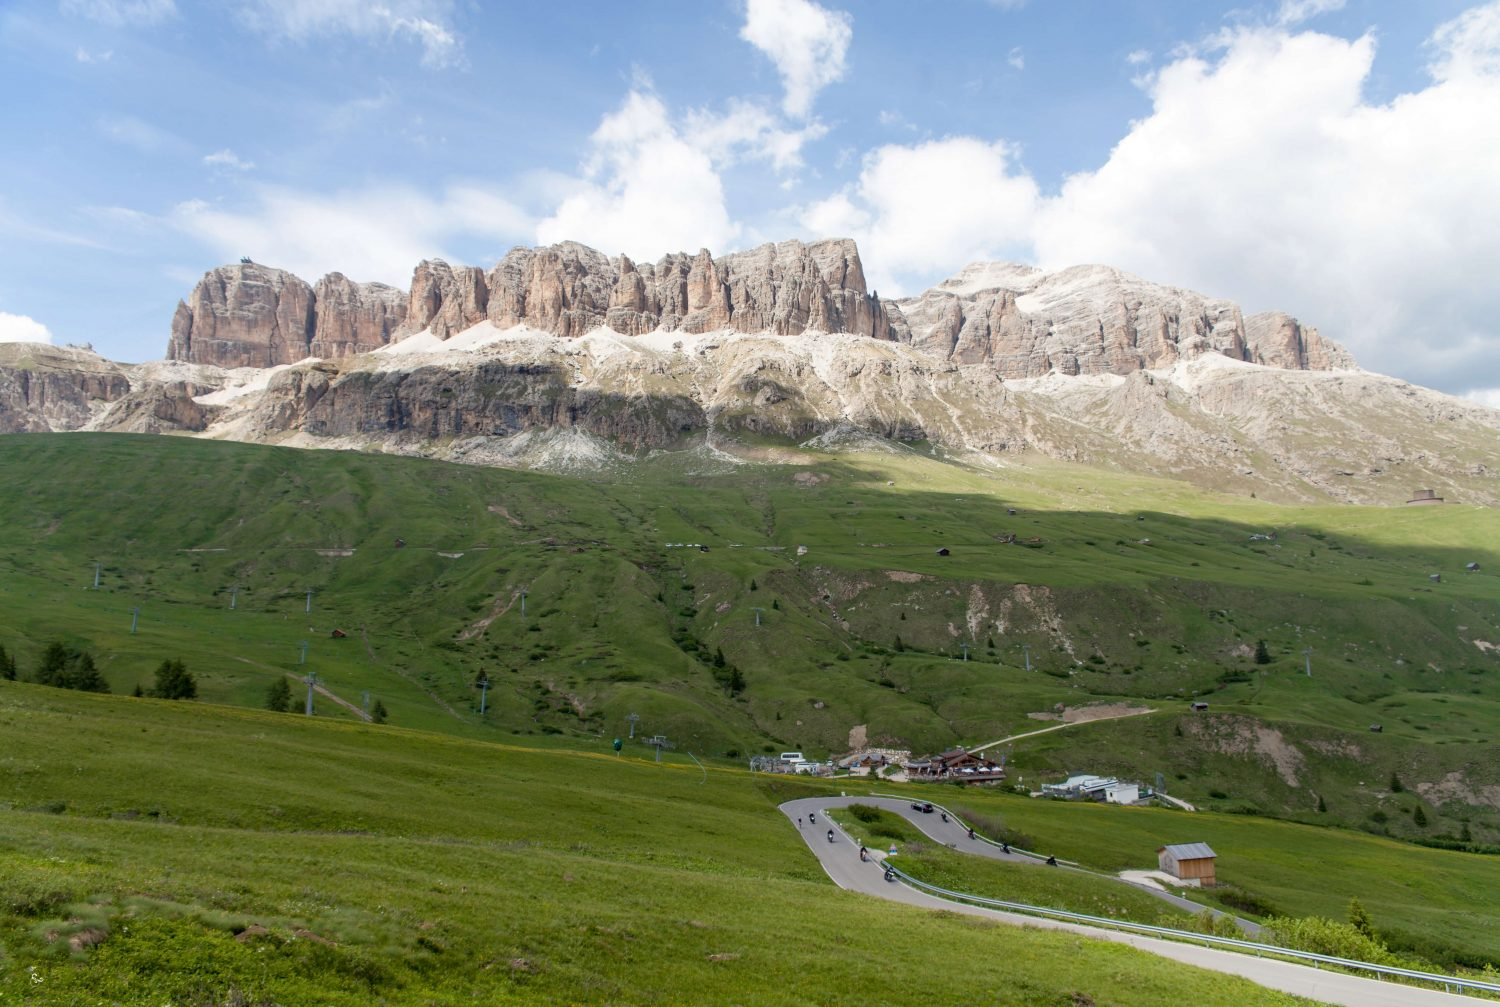 Dolomites Italy Hiking Roadtrip Route - Nowhere & Everywhere - Lis Dingjan Sustainable Eco Dolomiti Europe